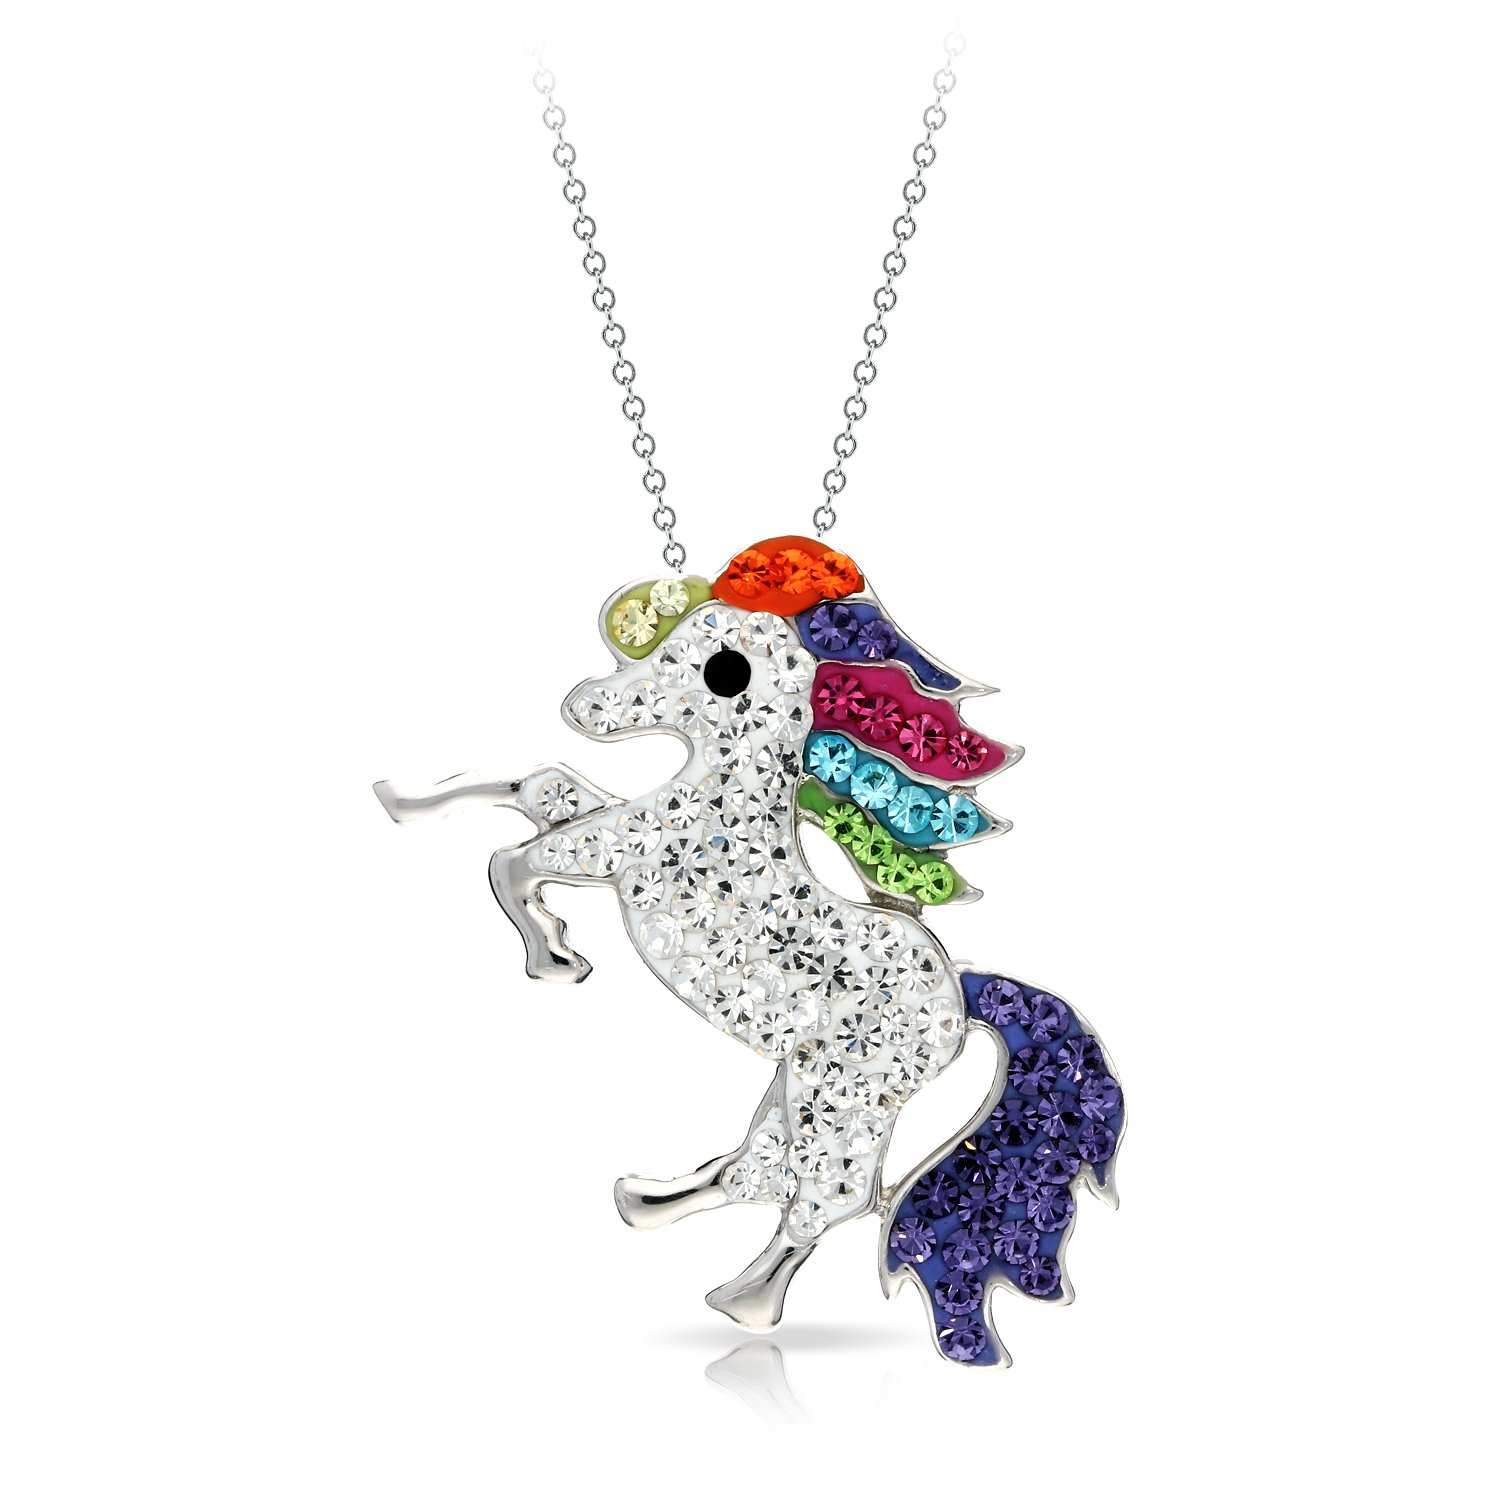 Colorful and Mythical Rearing Horse Pendant Necklace Never Rust 925 Sterling Silver Natural and Hypoallergenic Chain, for Women and Girls, with Free Breathtaking Gift Box for Special Moments of Love